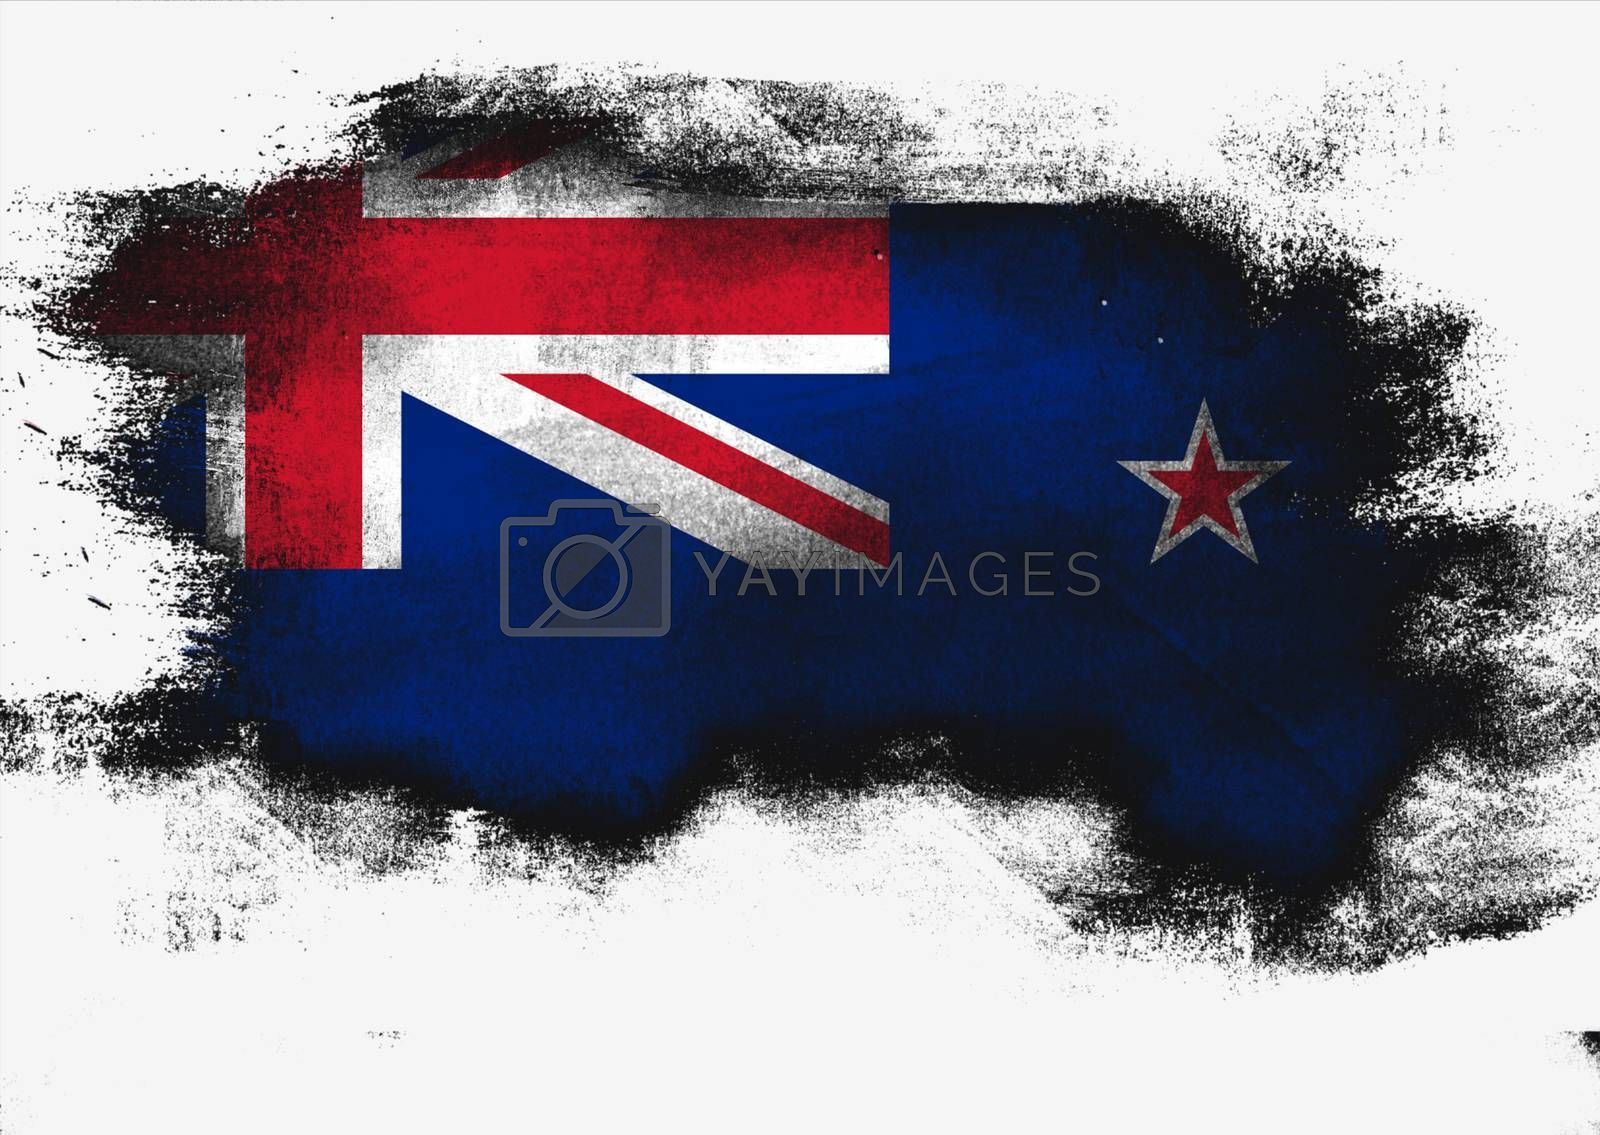 Royalty free image of New Zealand flag painted with brush by tang90246